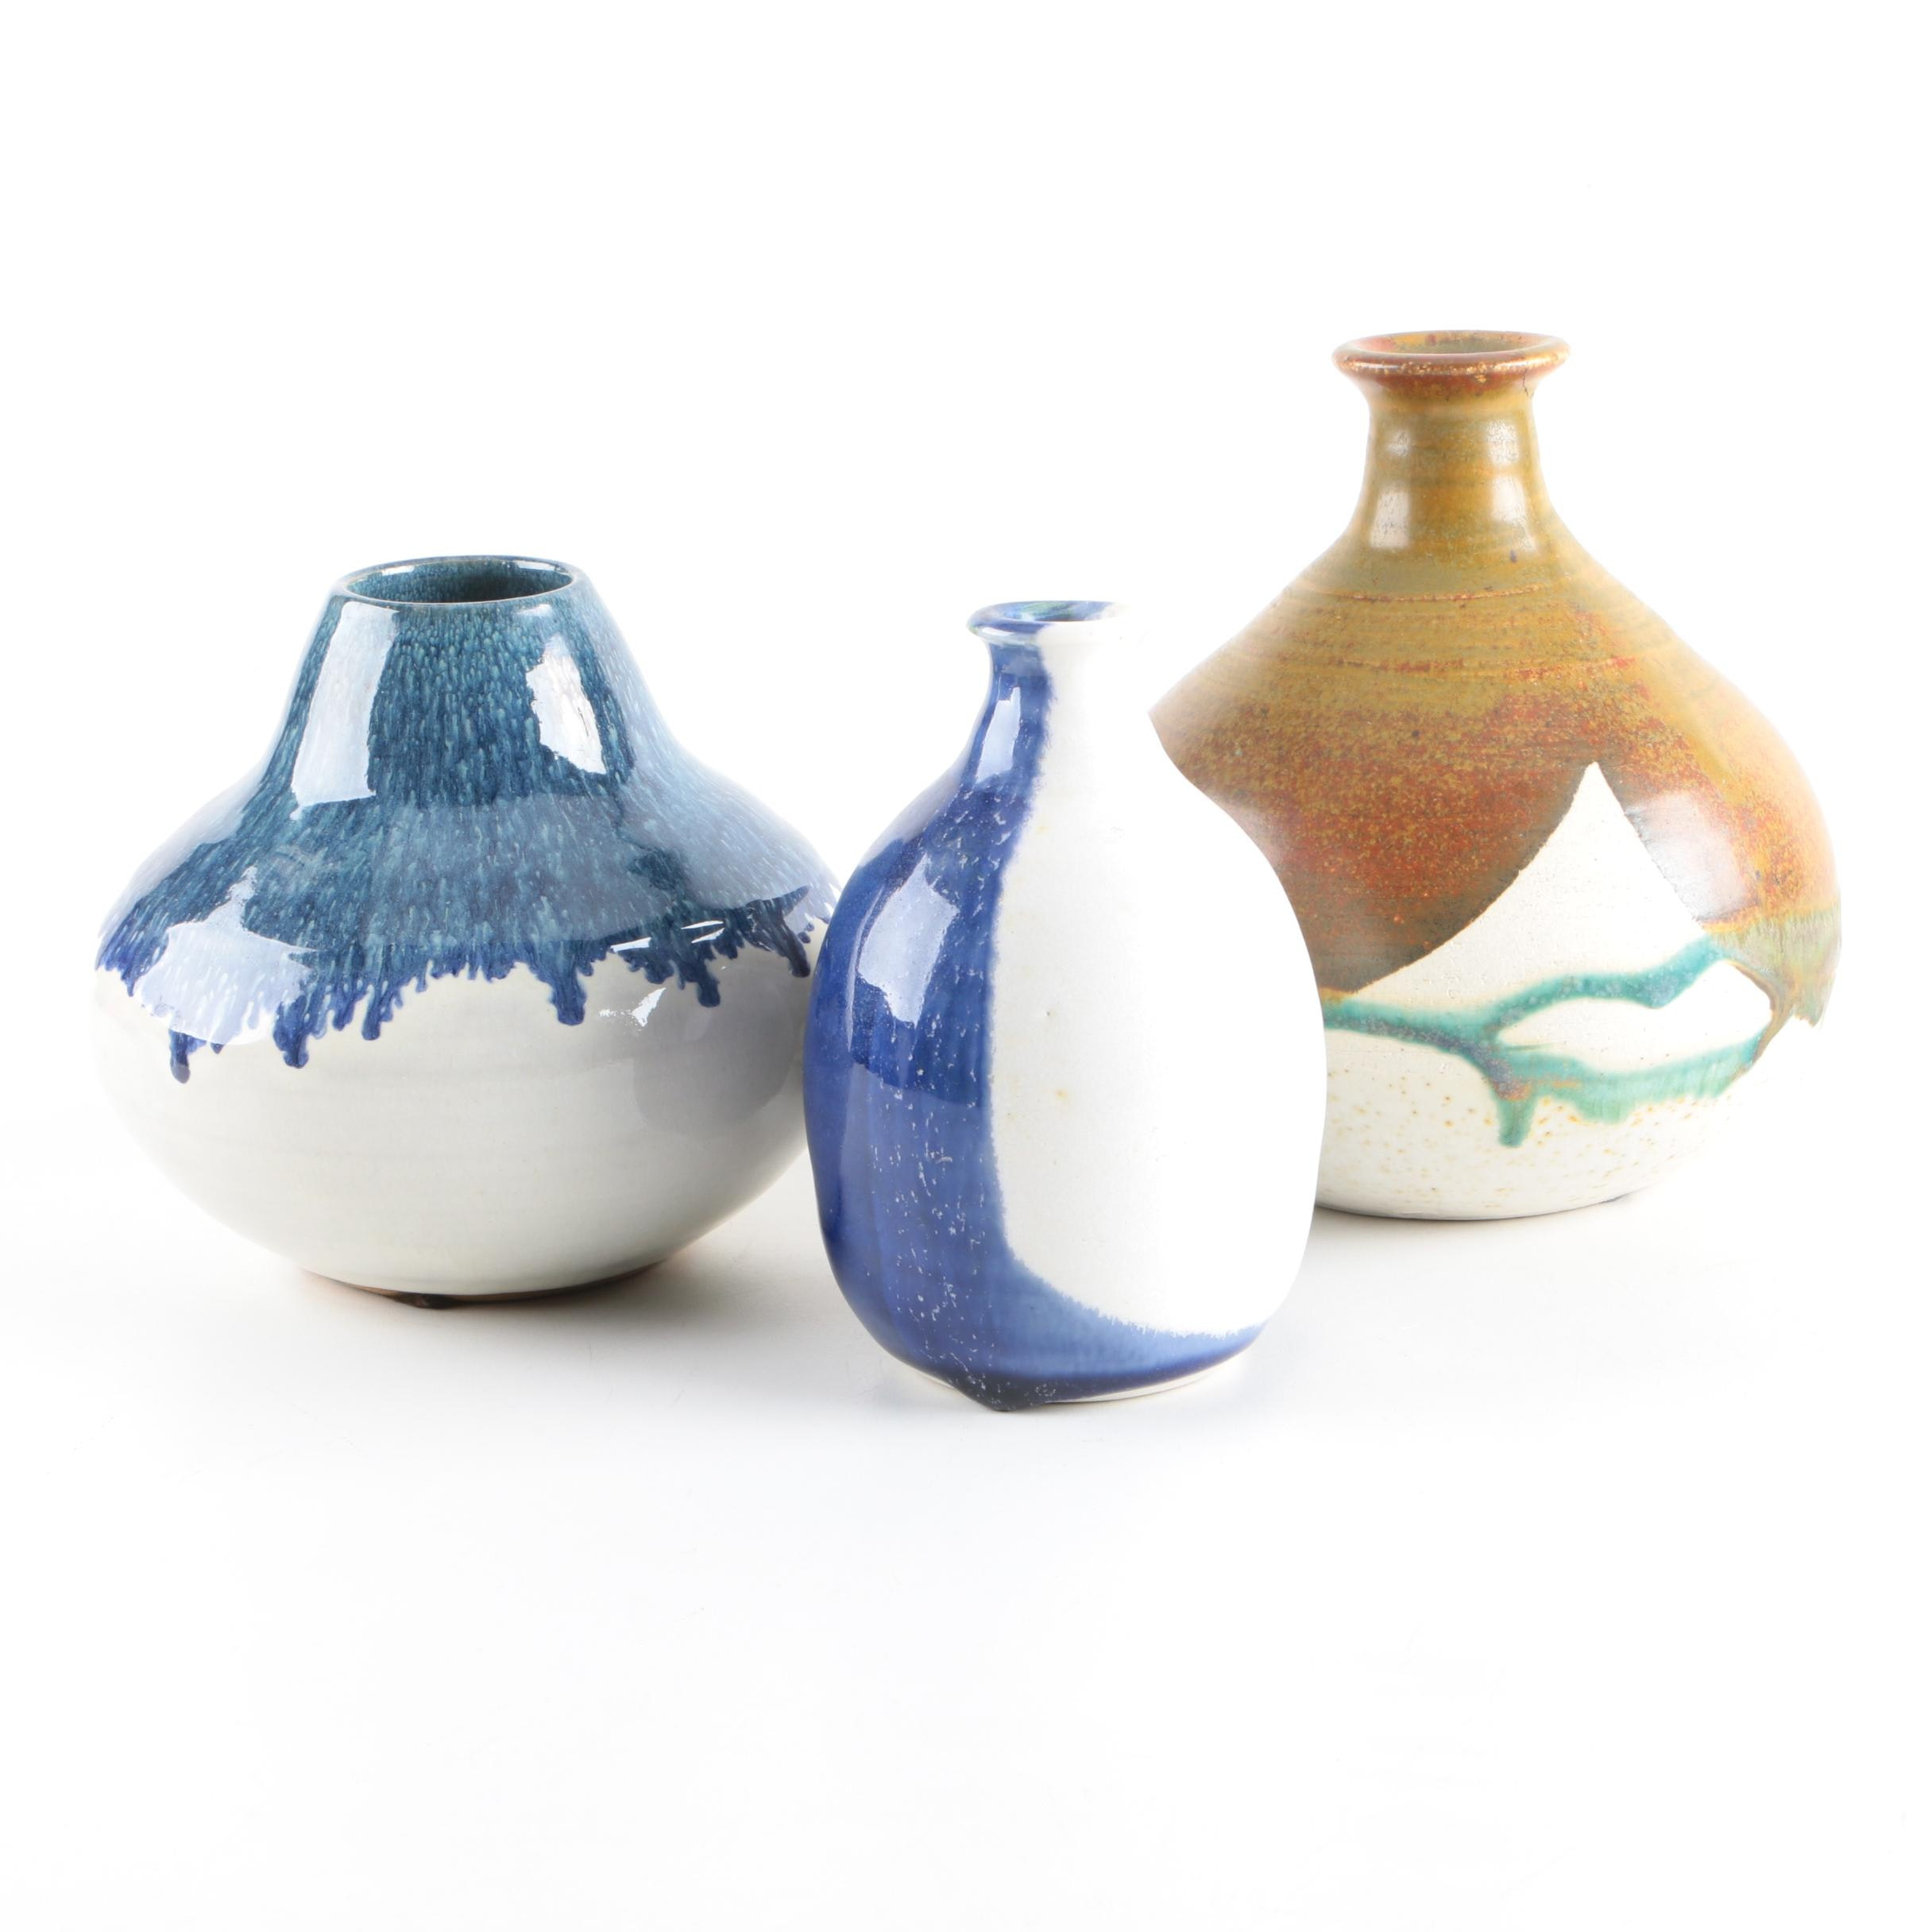 Art Pottery Bottles and a Vase